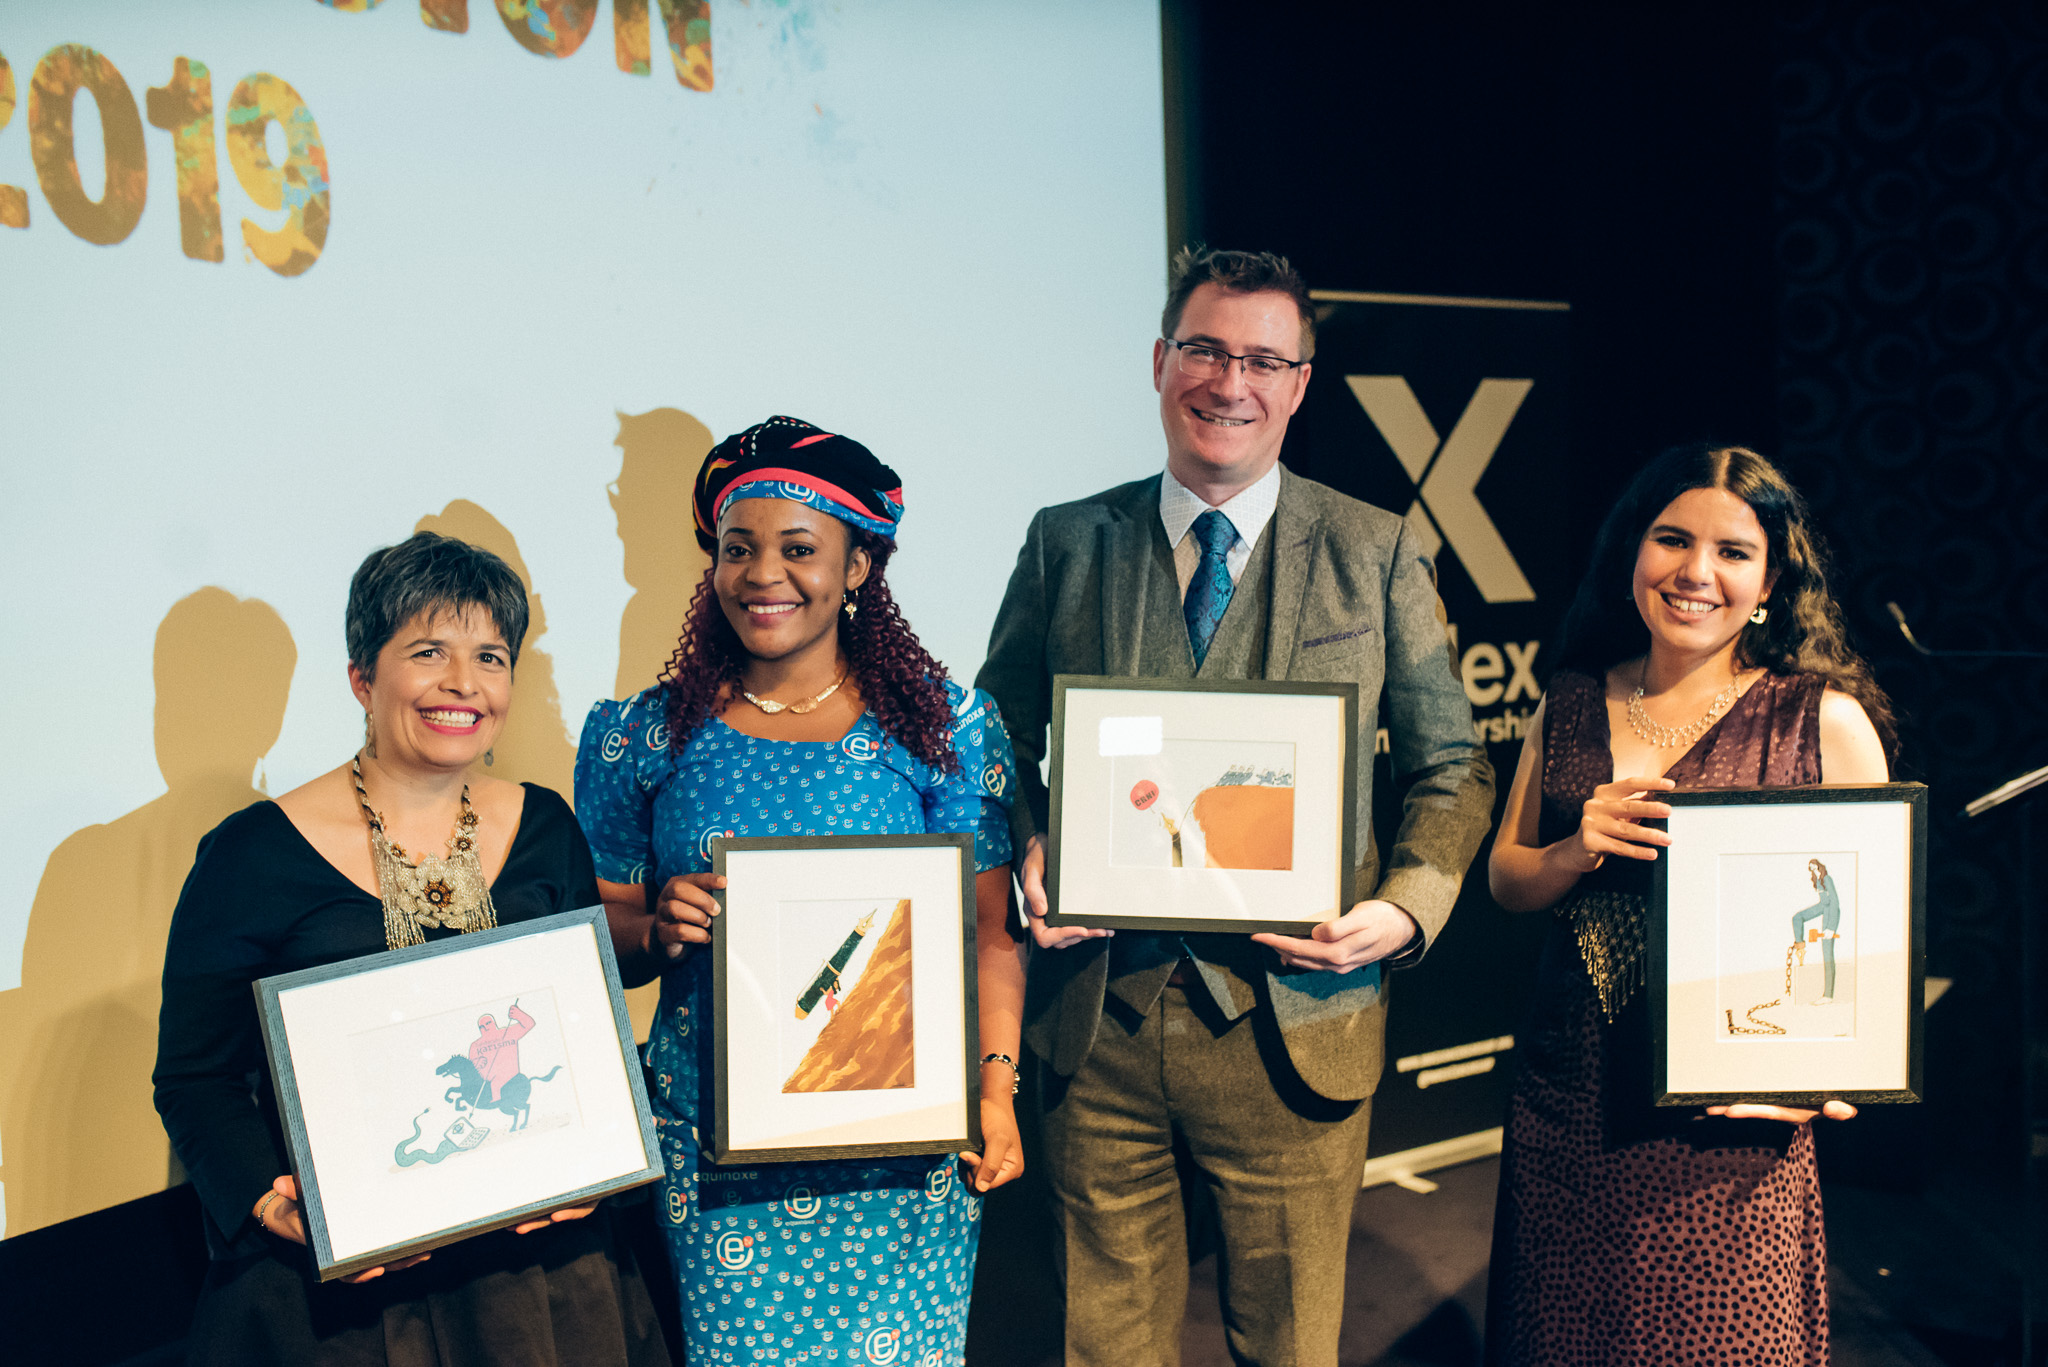 The 2019 Freedom of Expression Awards Fellows (from left): Carolina Botero Cabrera, executive director of digital activism award-winning Fundación Karisma; Journalism award-winning journalist Mimi Mefo; Terry Anderson, deputy executive director of campaigning award-winning Cartoonist Rights Network International; Arts award-winning Zehra Doğan. (Photo: Elina Kansikas for Index on Censorship)